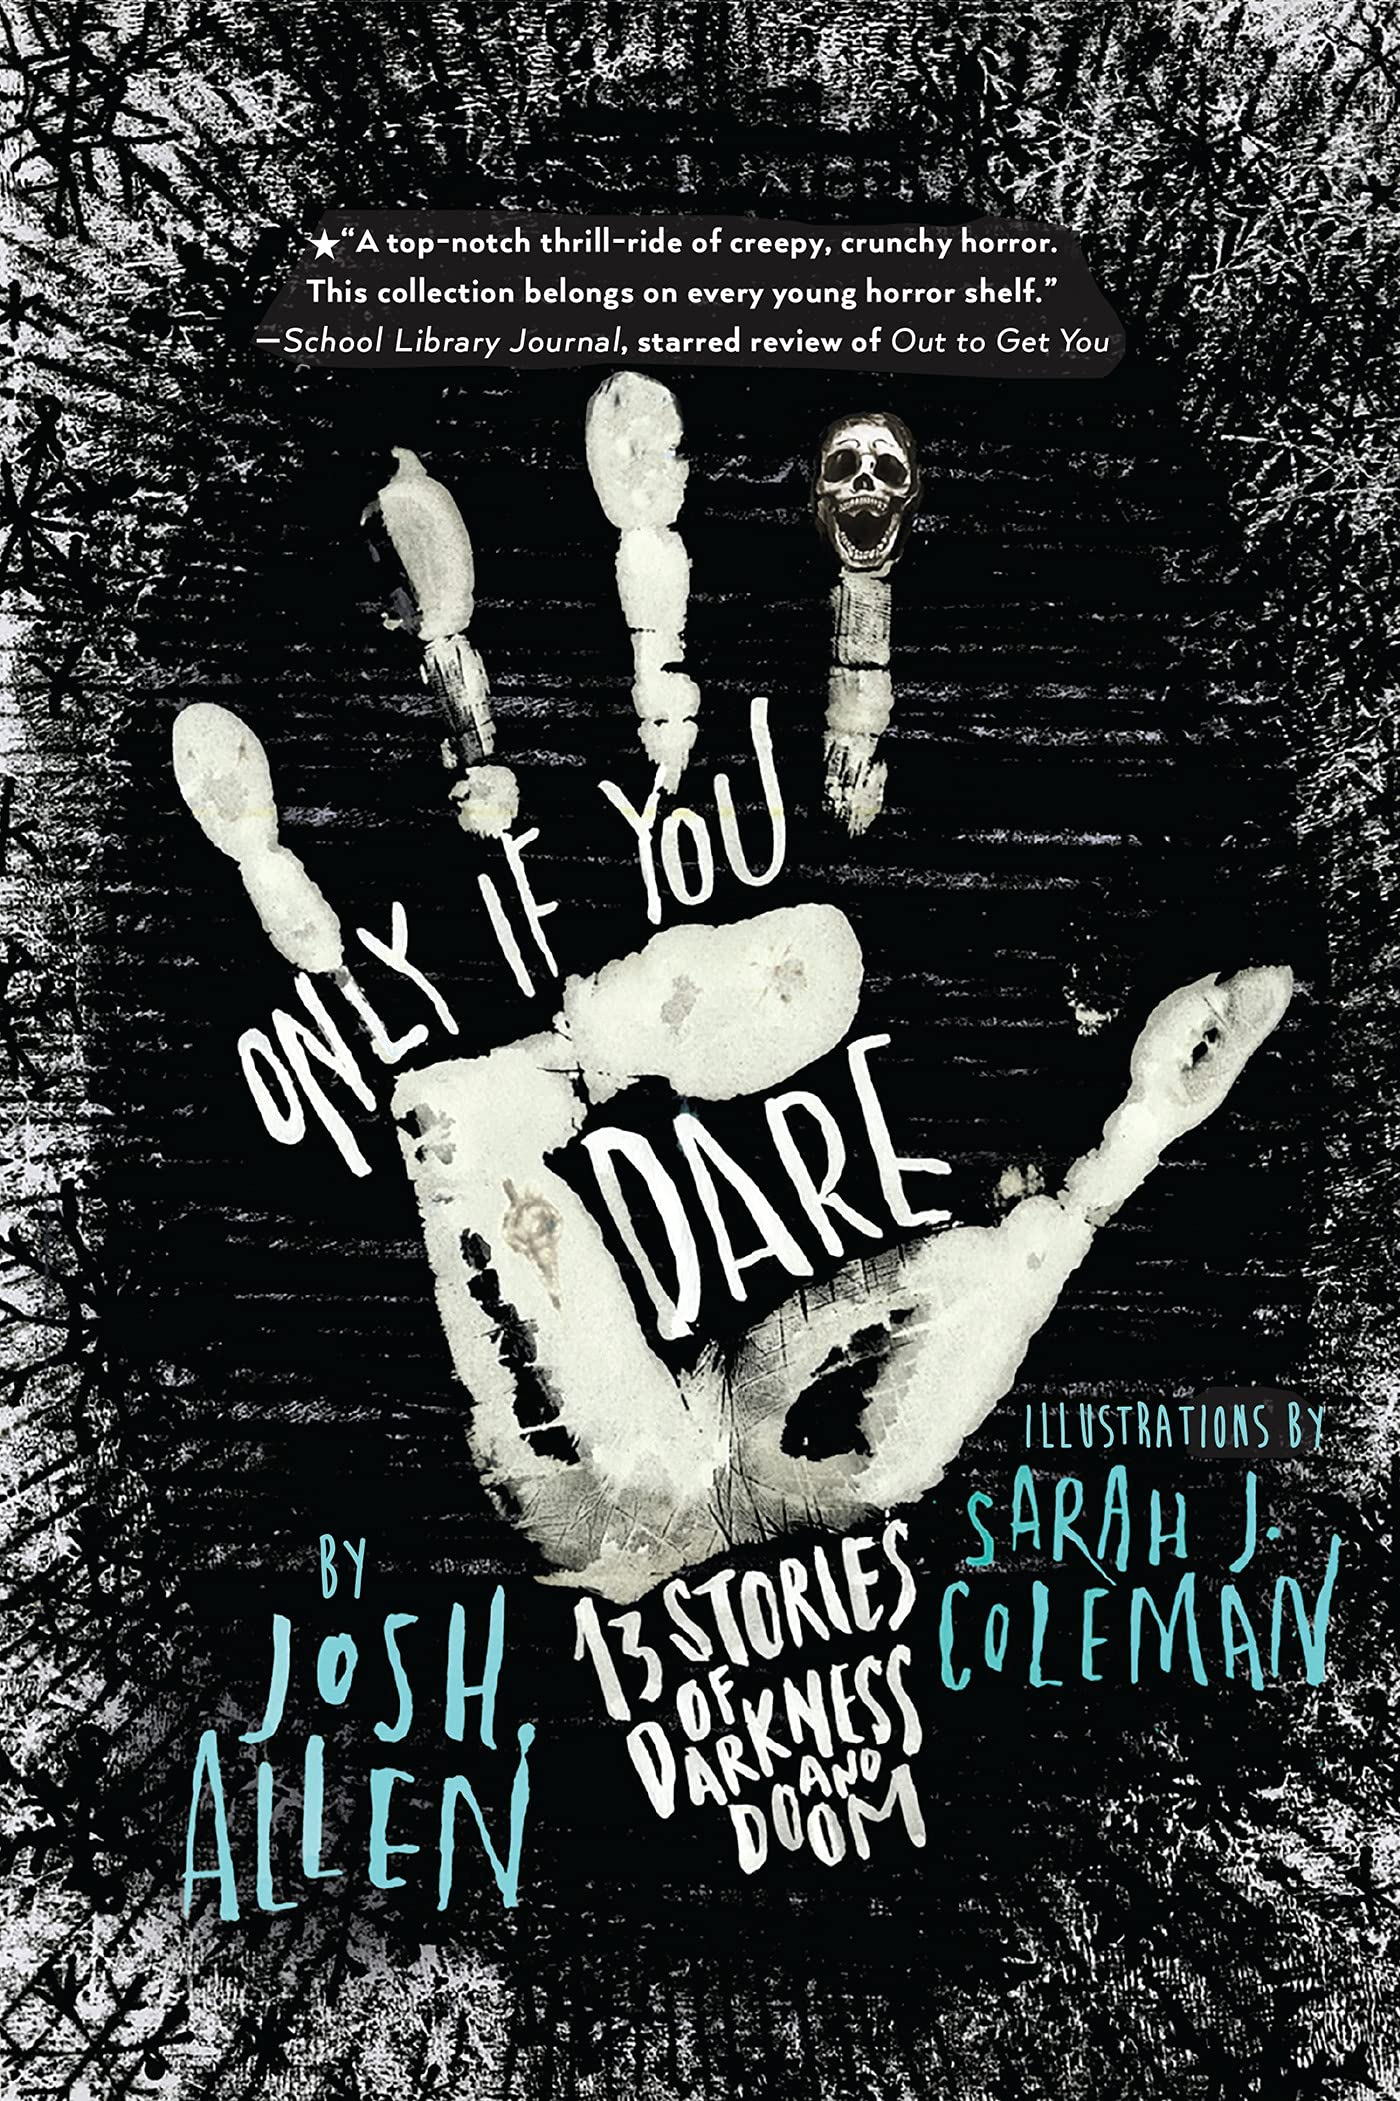 Only If You Dare: 13 Stories of Darkness and Doom: Allen, Josh, Coleman,  Sarah J.: 9780823449064: Amazon.com: Books